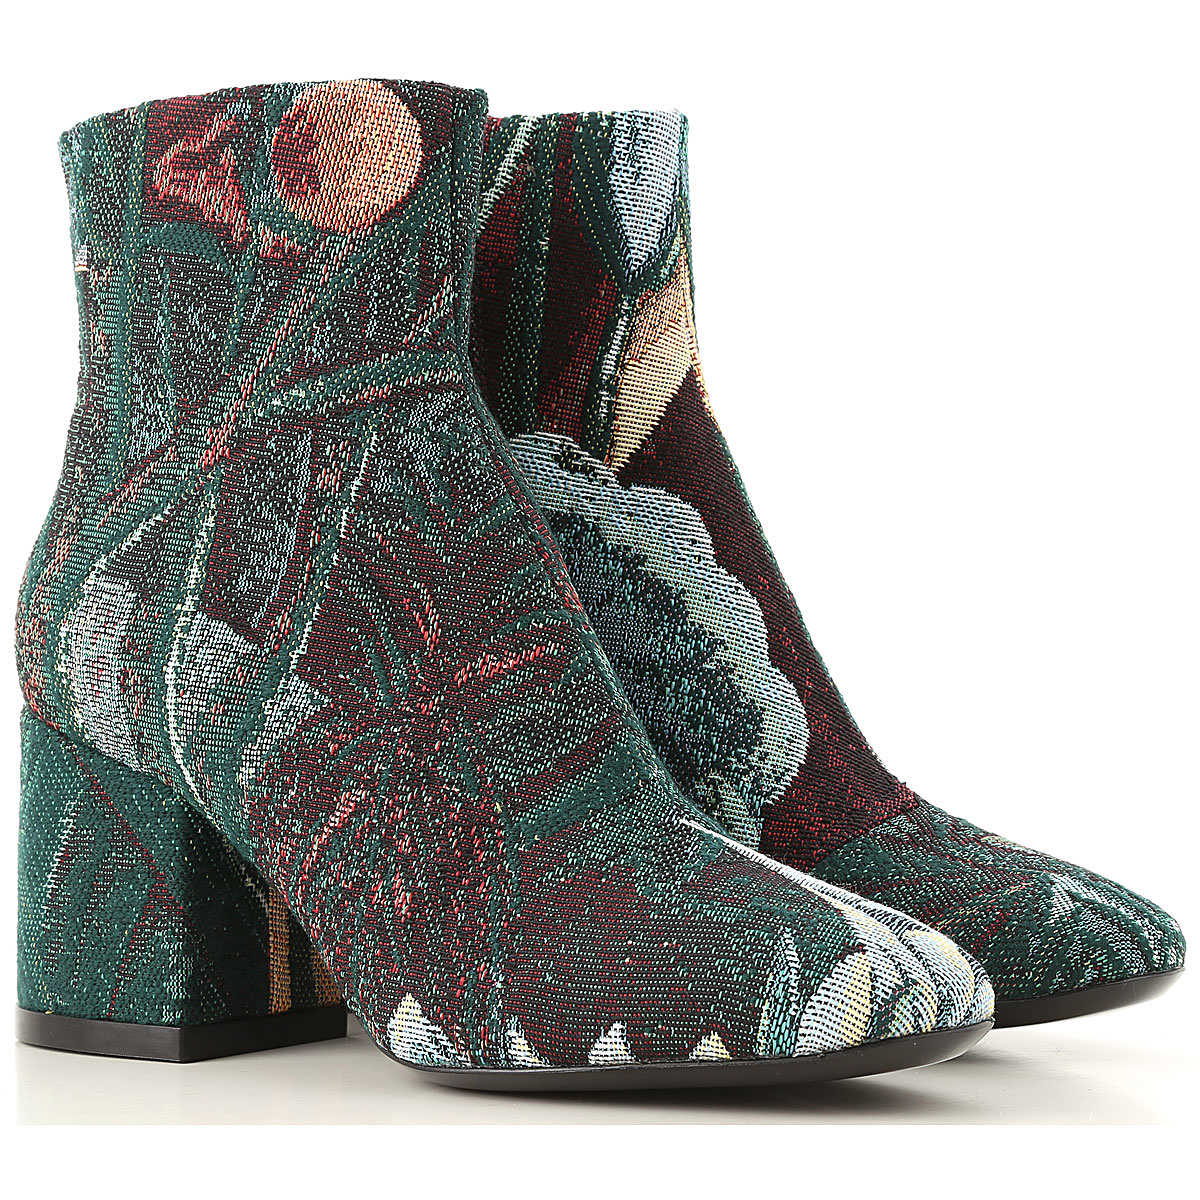 Paul Smith Boots for Women Booties On Sale DK - GOOFASH - Womens BOOTS